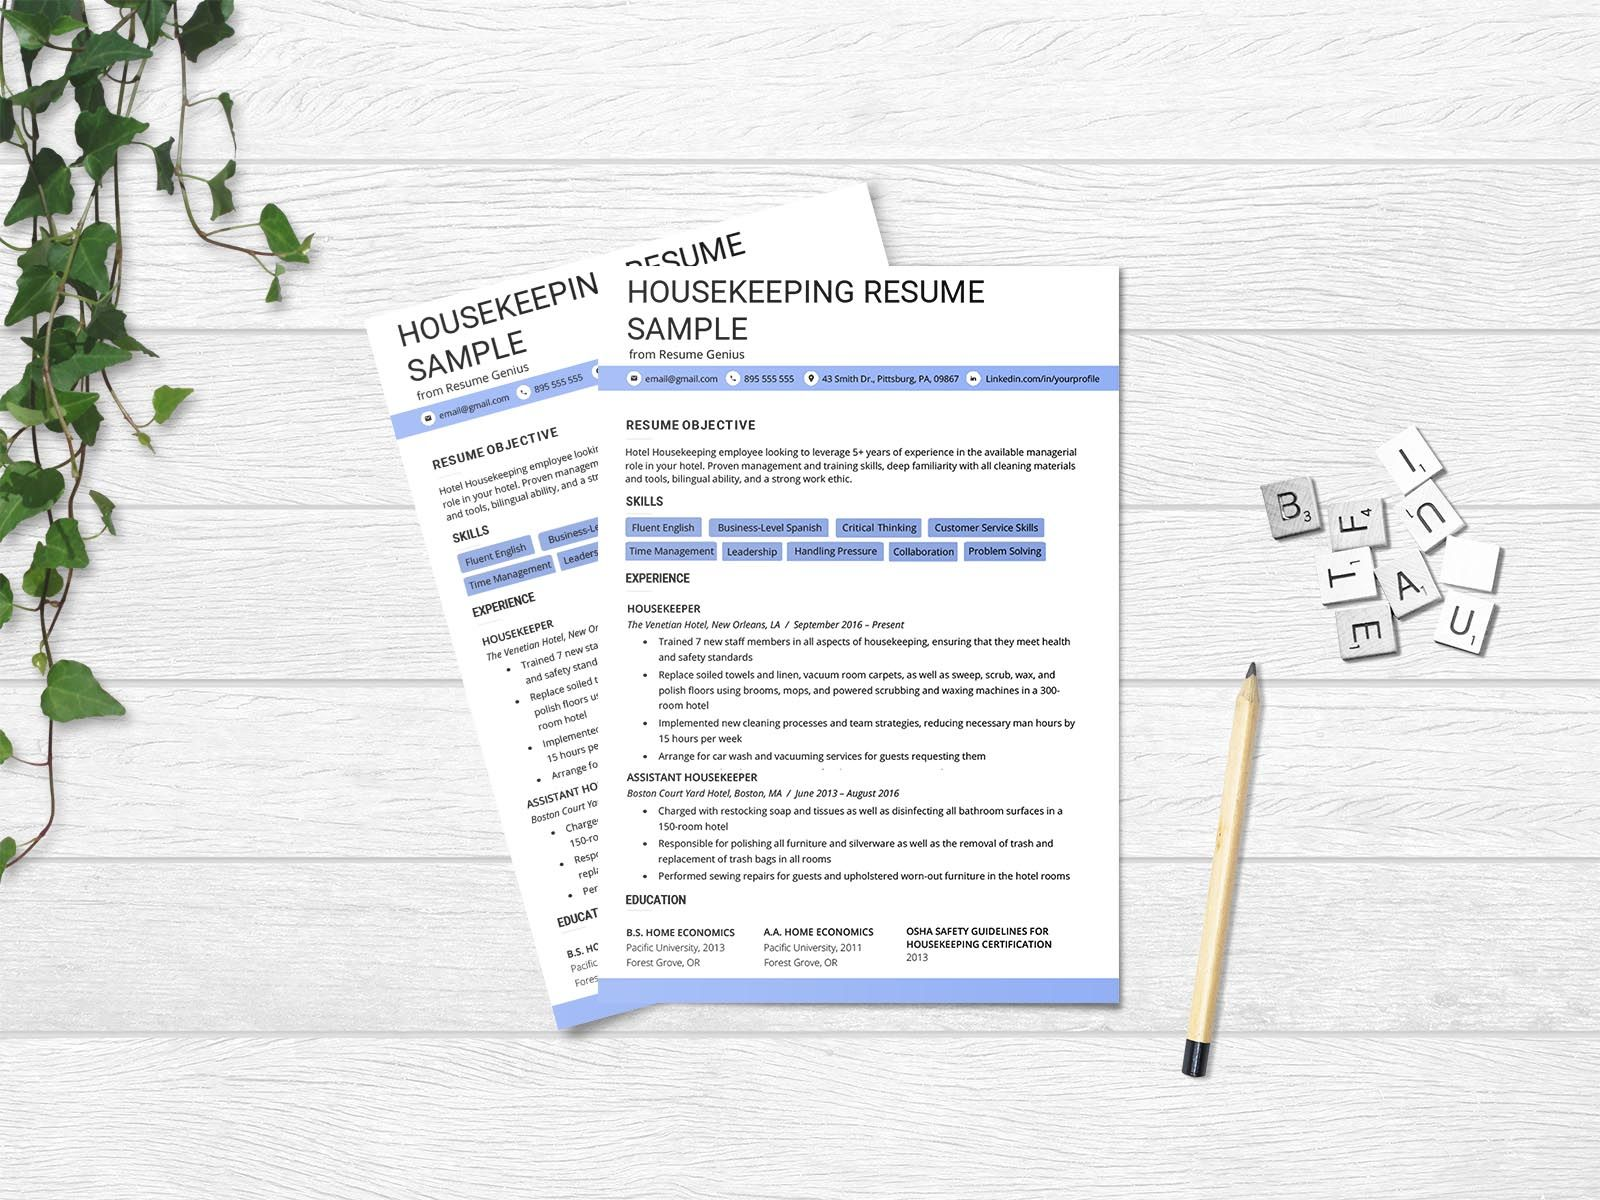 IT QA Analyst Resume Example, Template, Sample, CV, Formal